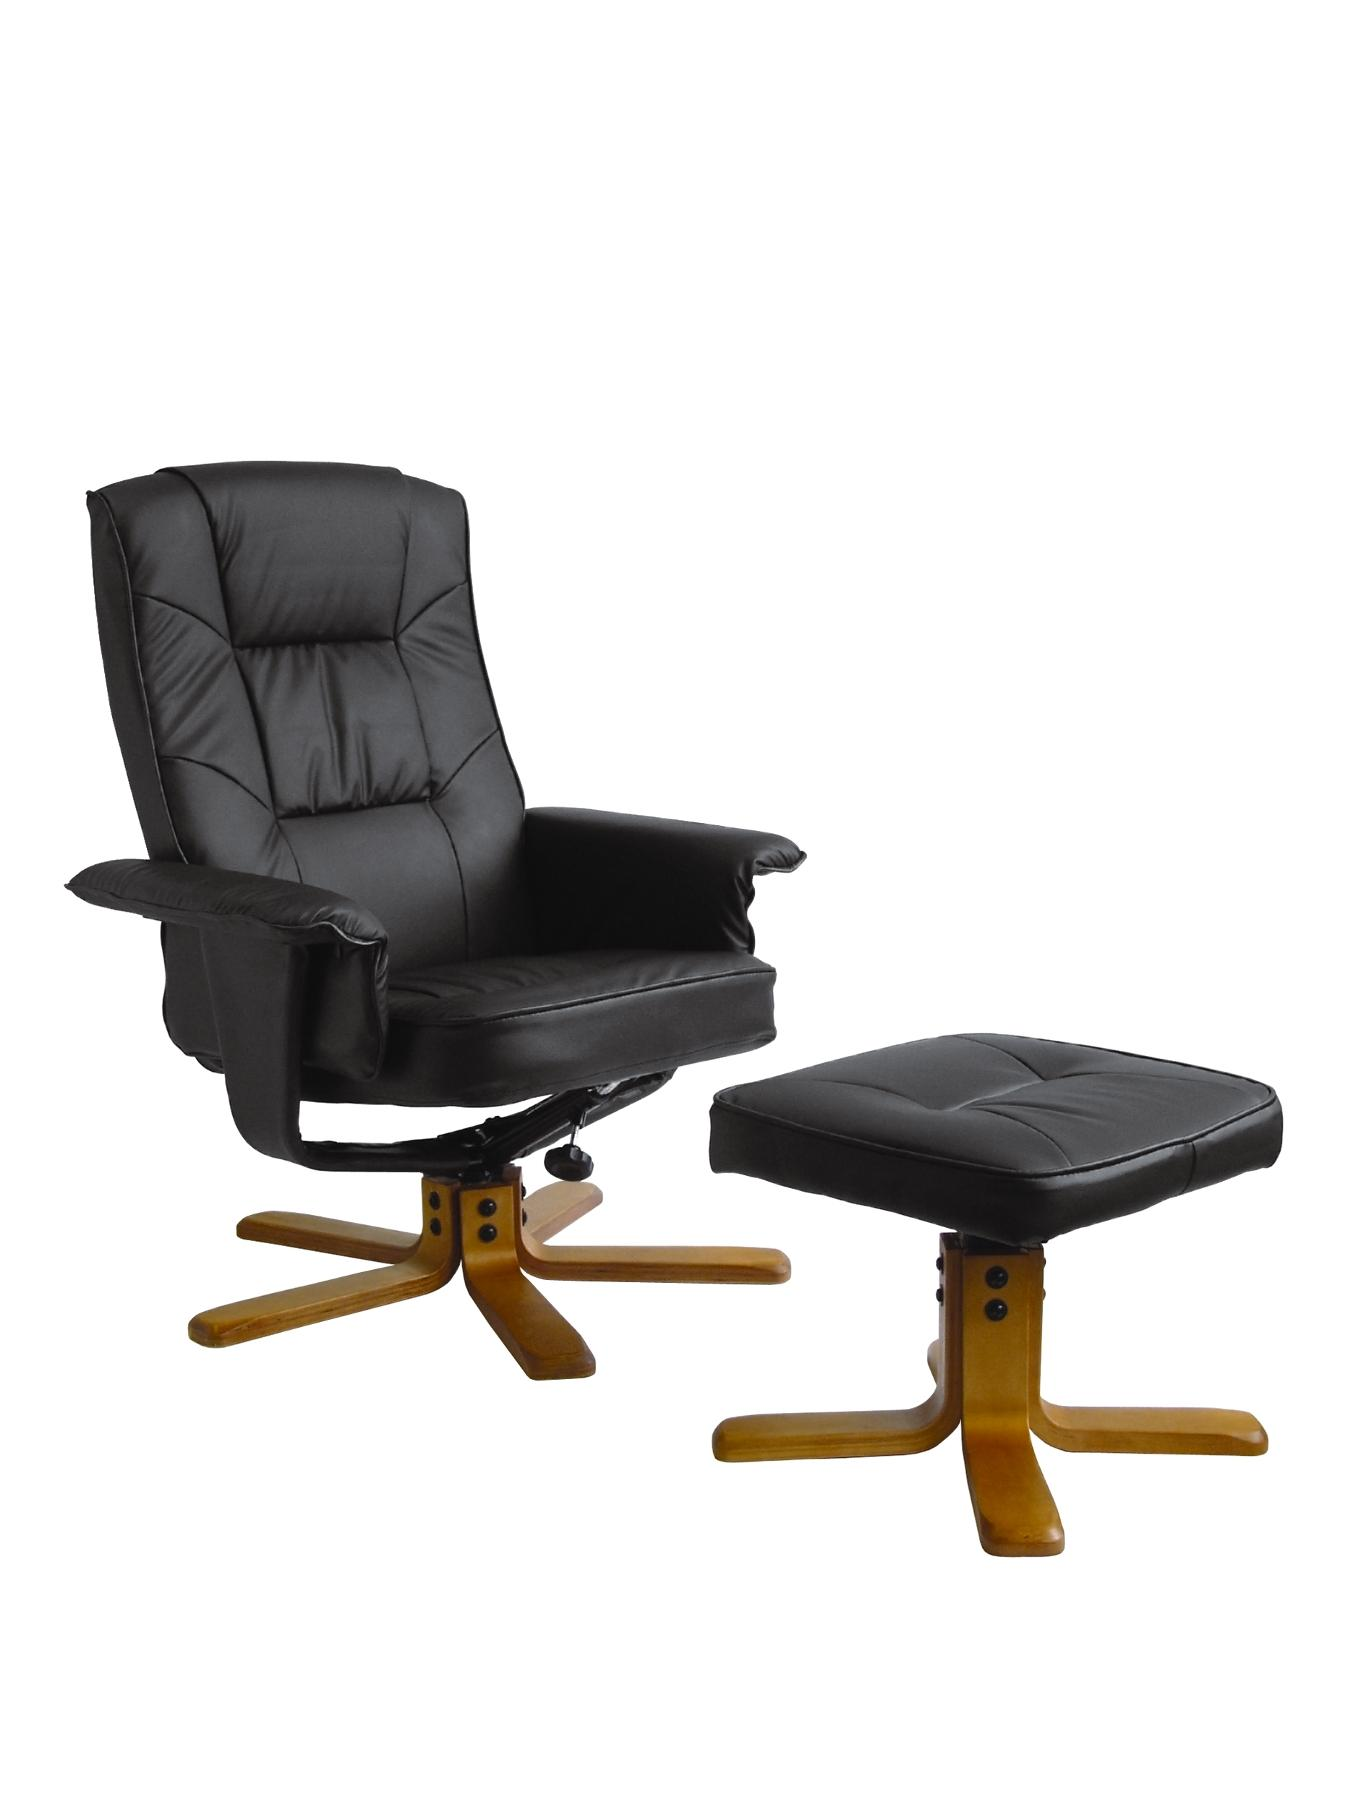 Drake Reclining Office Chair with Matching Footstool, Cream,Black,Brown